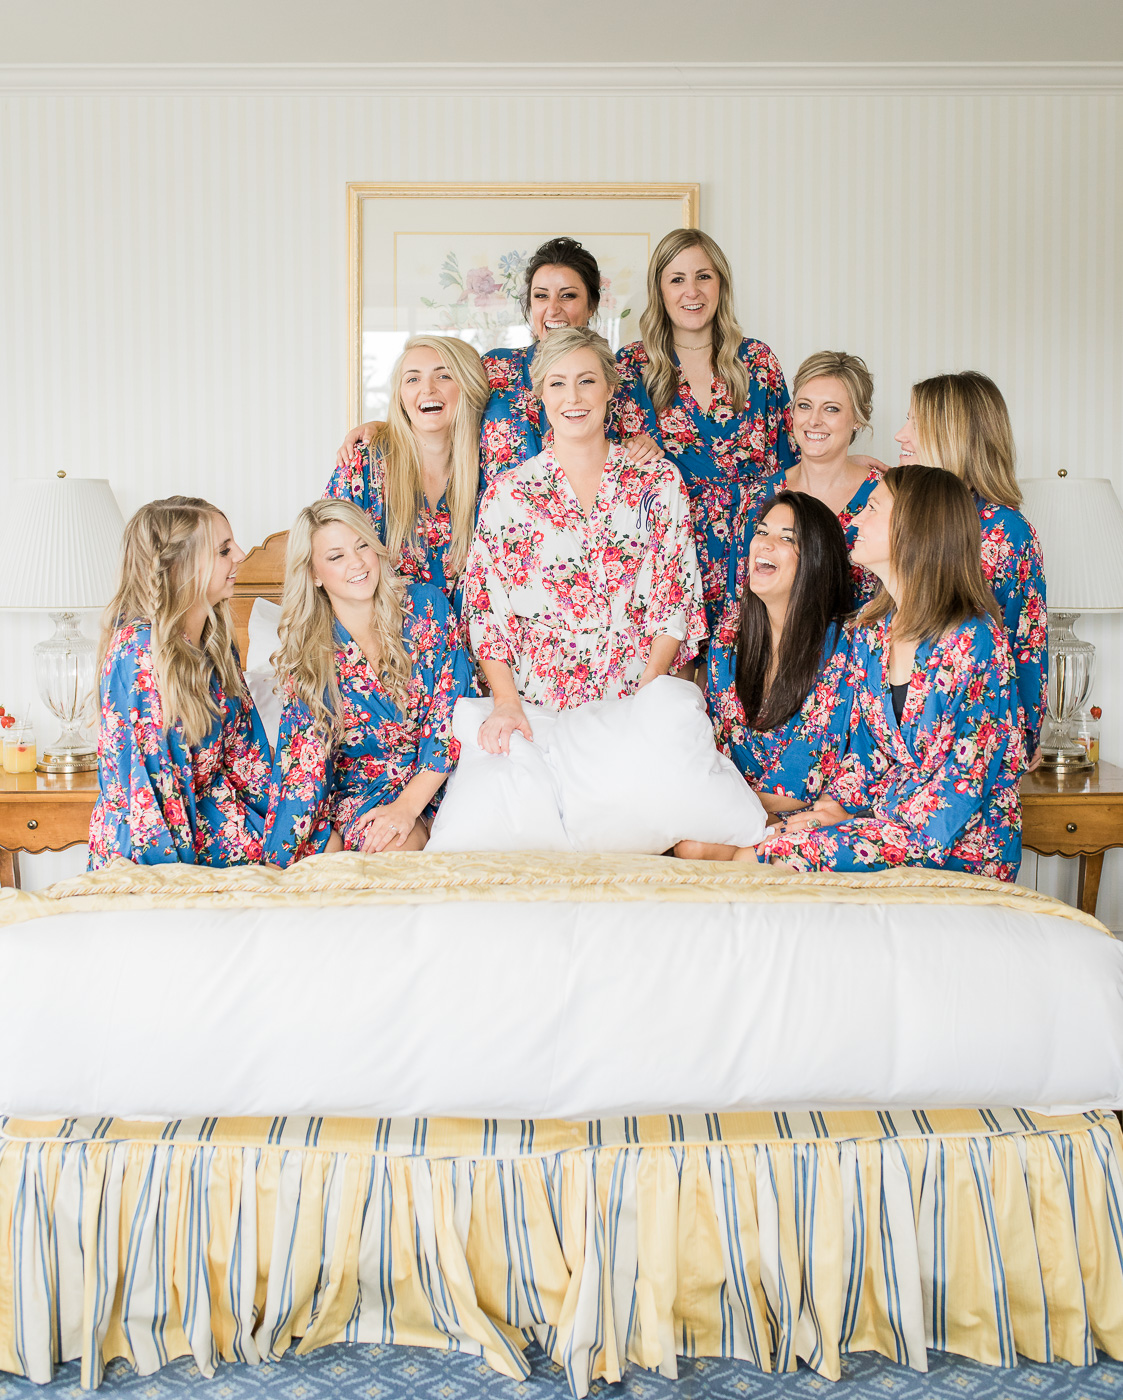 Matching floral bridesmaids robes